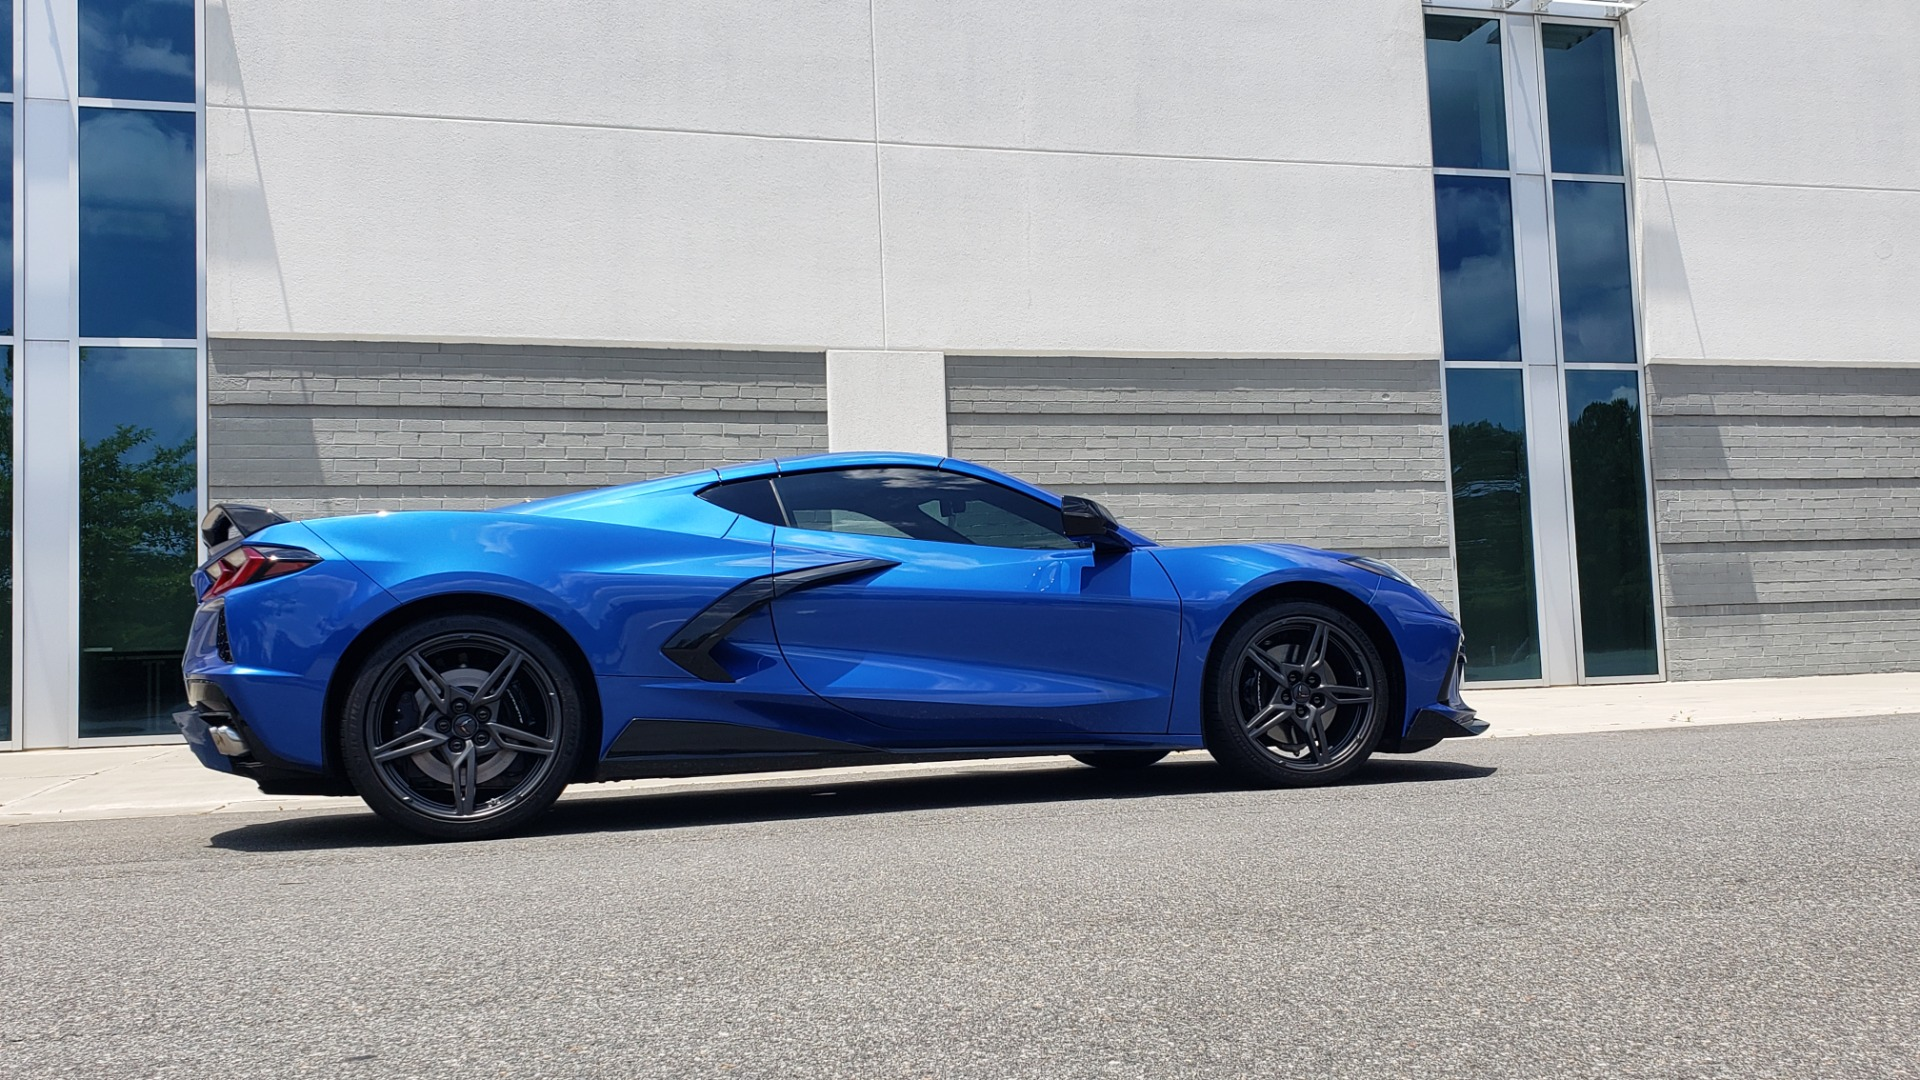 Used 2020 Chevrolet CORVETTE C8 STINGRAY COUPE 2LT / PERF & Z51 PKG / NAV / BOSE / 8-SPD AUTO / REARVIEW for sale Sold at Formula Imports in Charlotte NC 28227 5